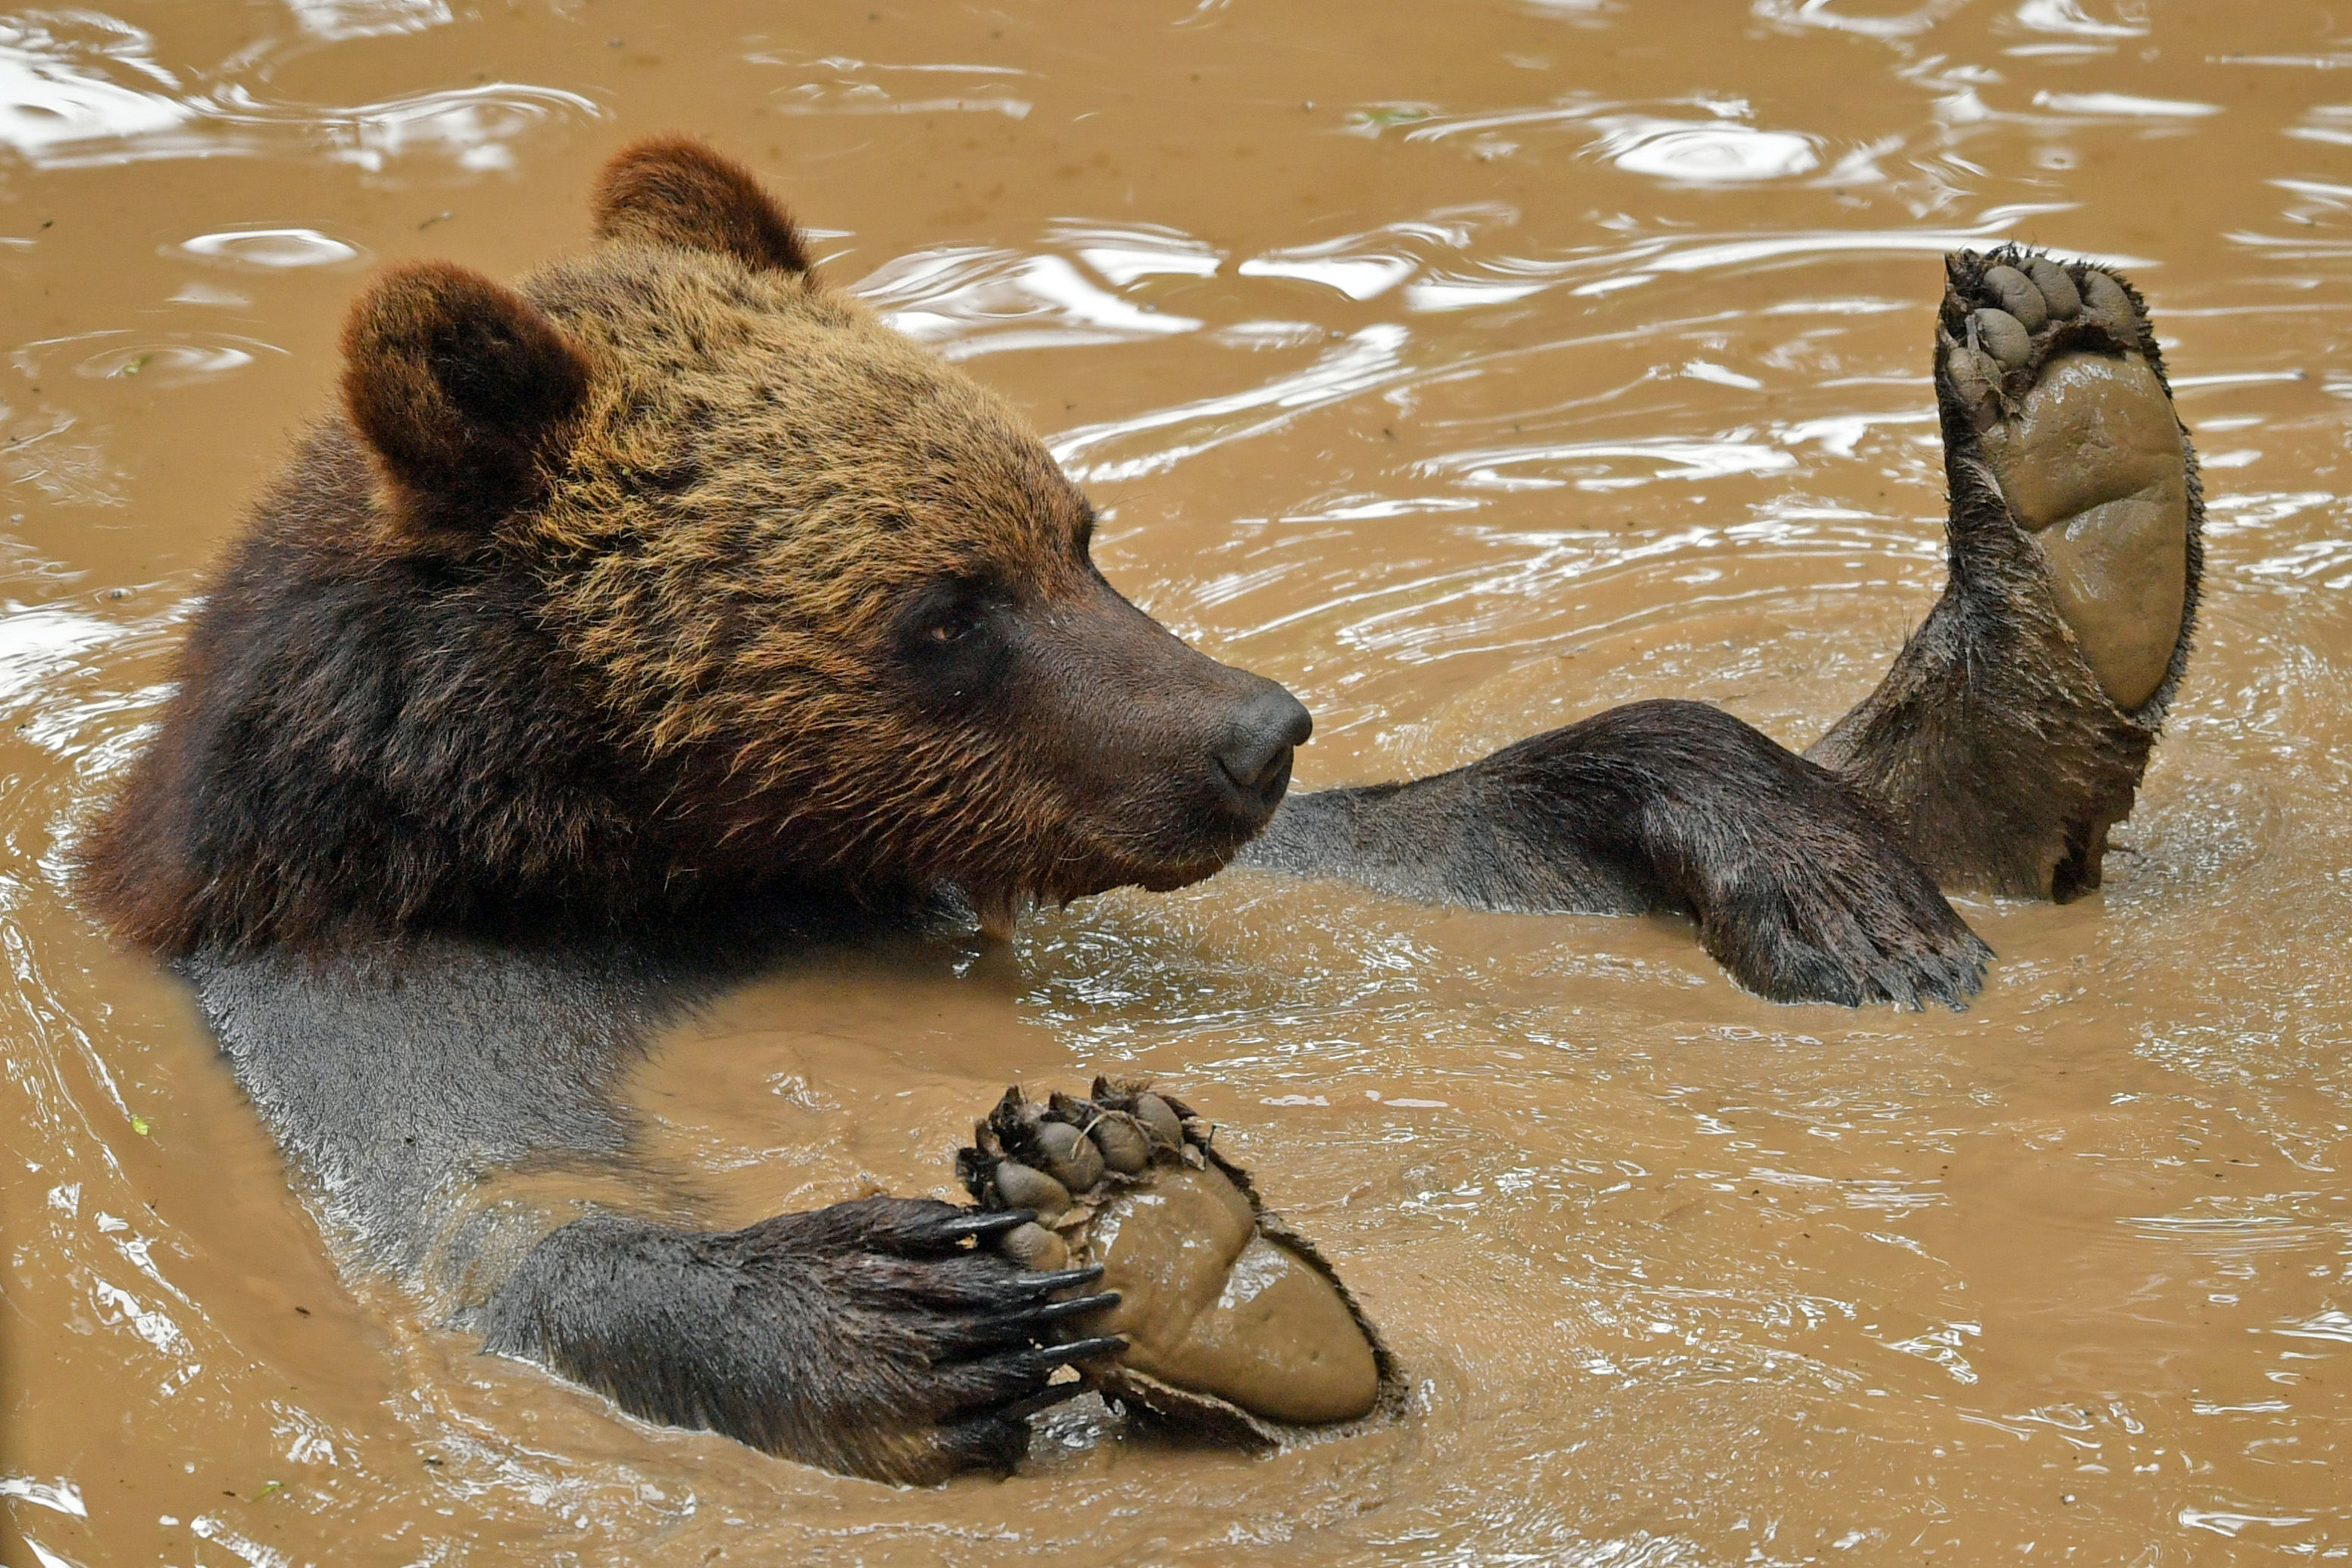 A bear plays in a pool as four European brown bears and five grey wolves which are living together in British woodland for the first time in Bear Wood, a new enclosure at Bristol Zoo's Wild Place project. (Photo by Ben Birchall/PA Images via Getty Images)